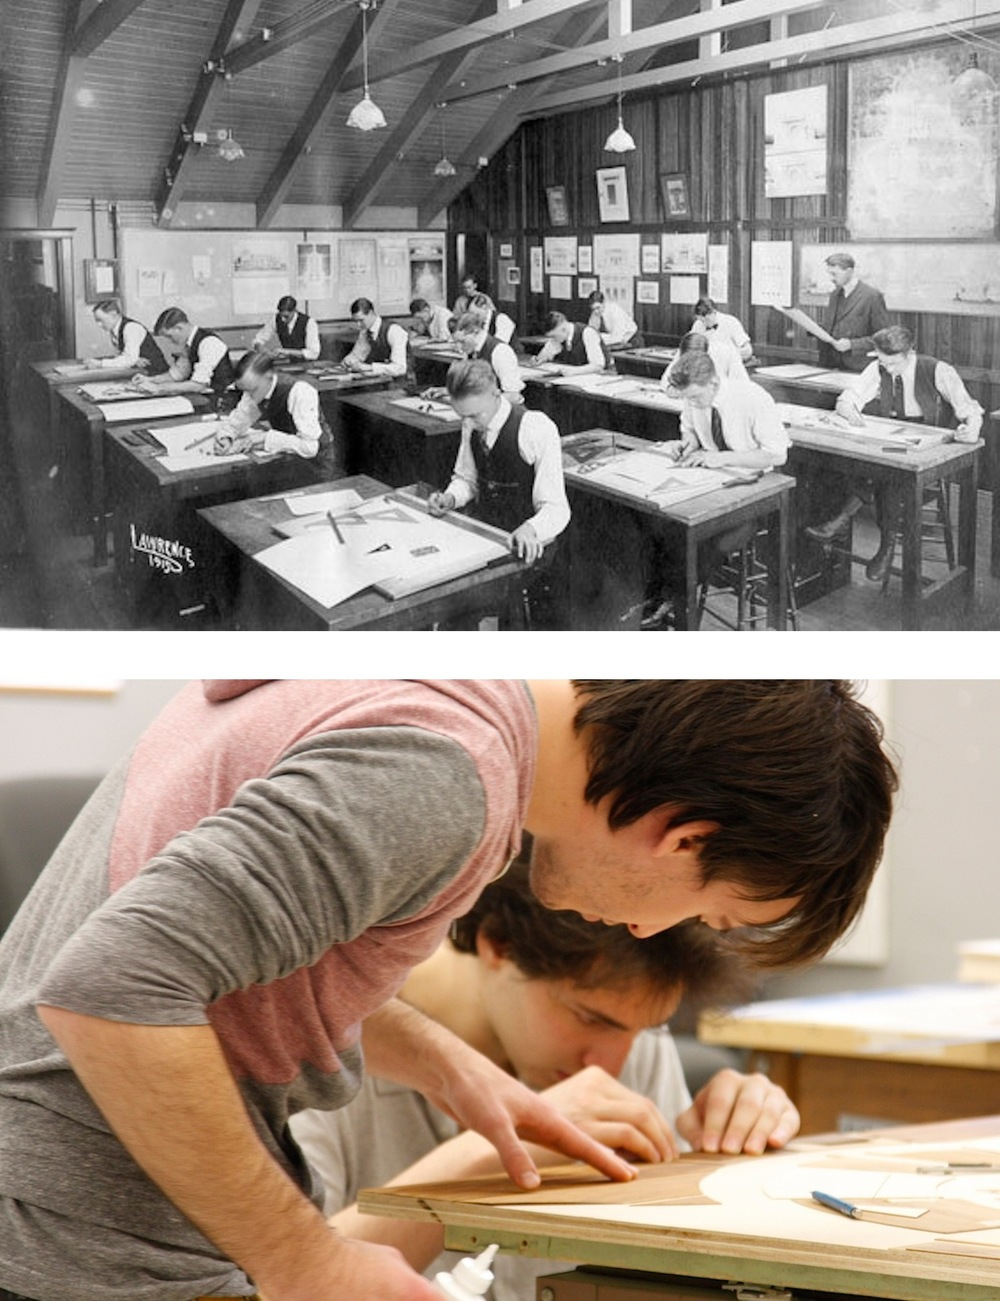 Although these photos were taken almost 100 years apart, both generations of  KU architecture students have one thing in common: They ' re working in Marvin Hall.